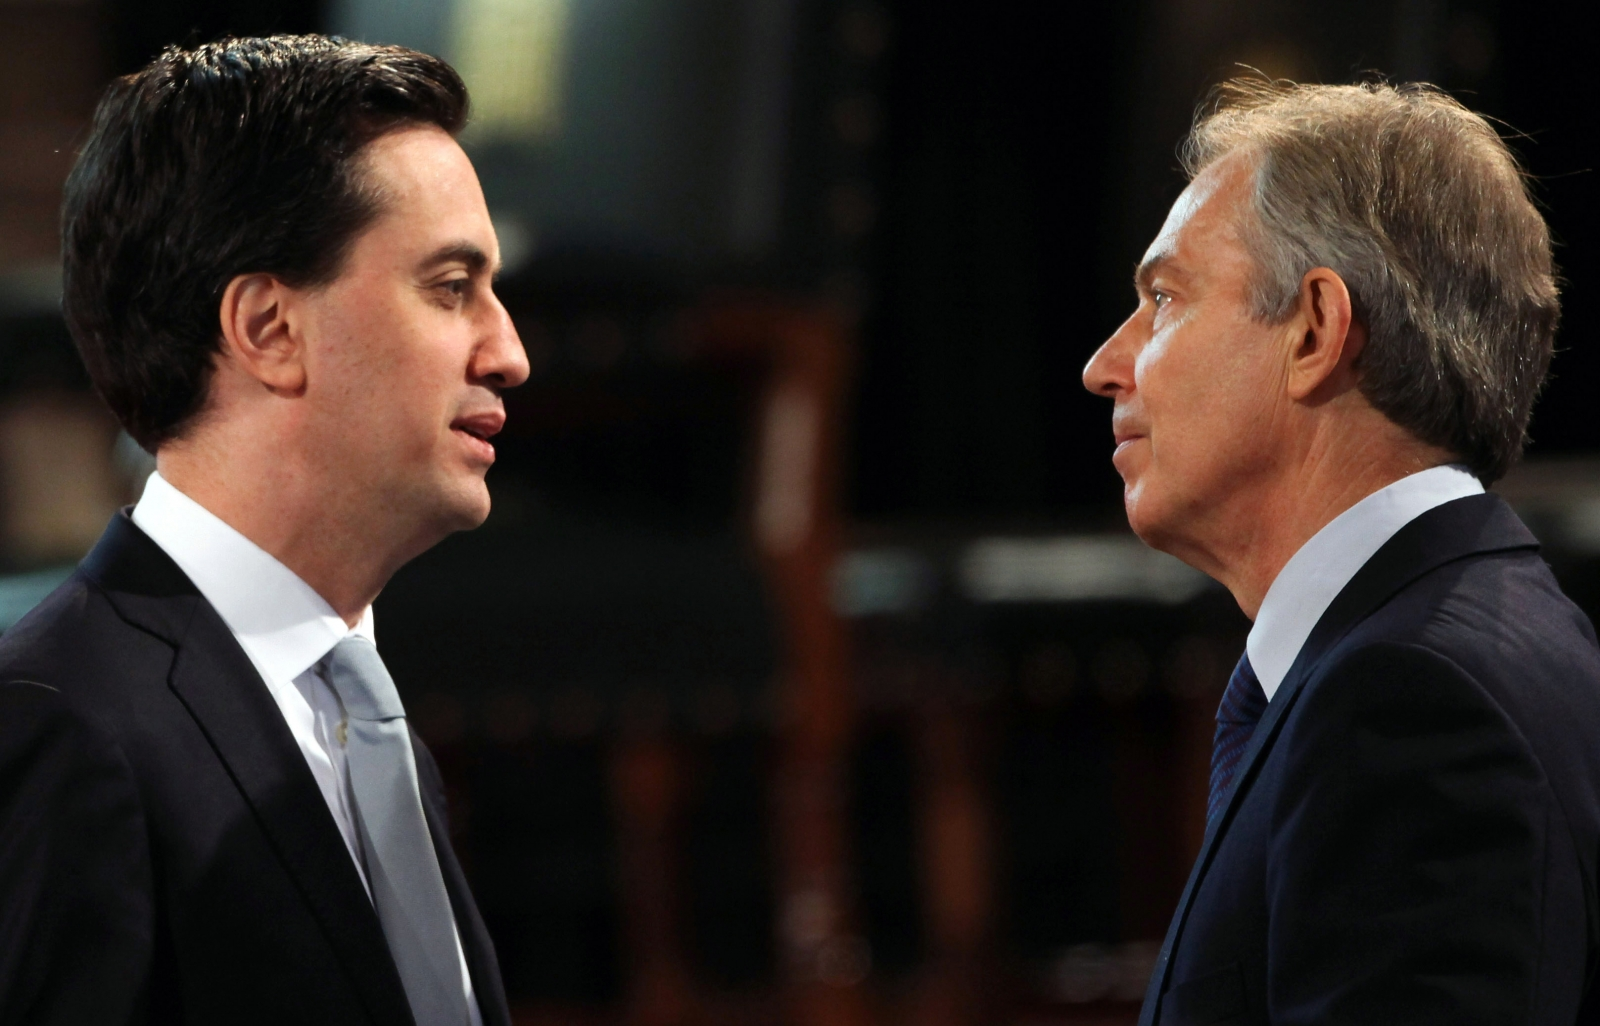 Tony Blair and Ed Miliband